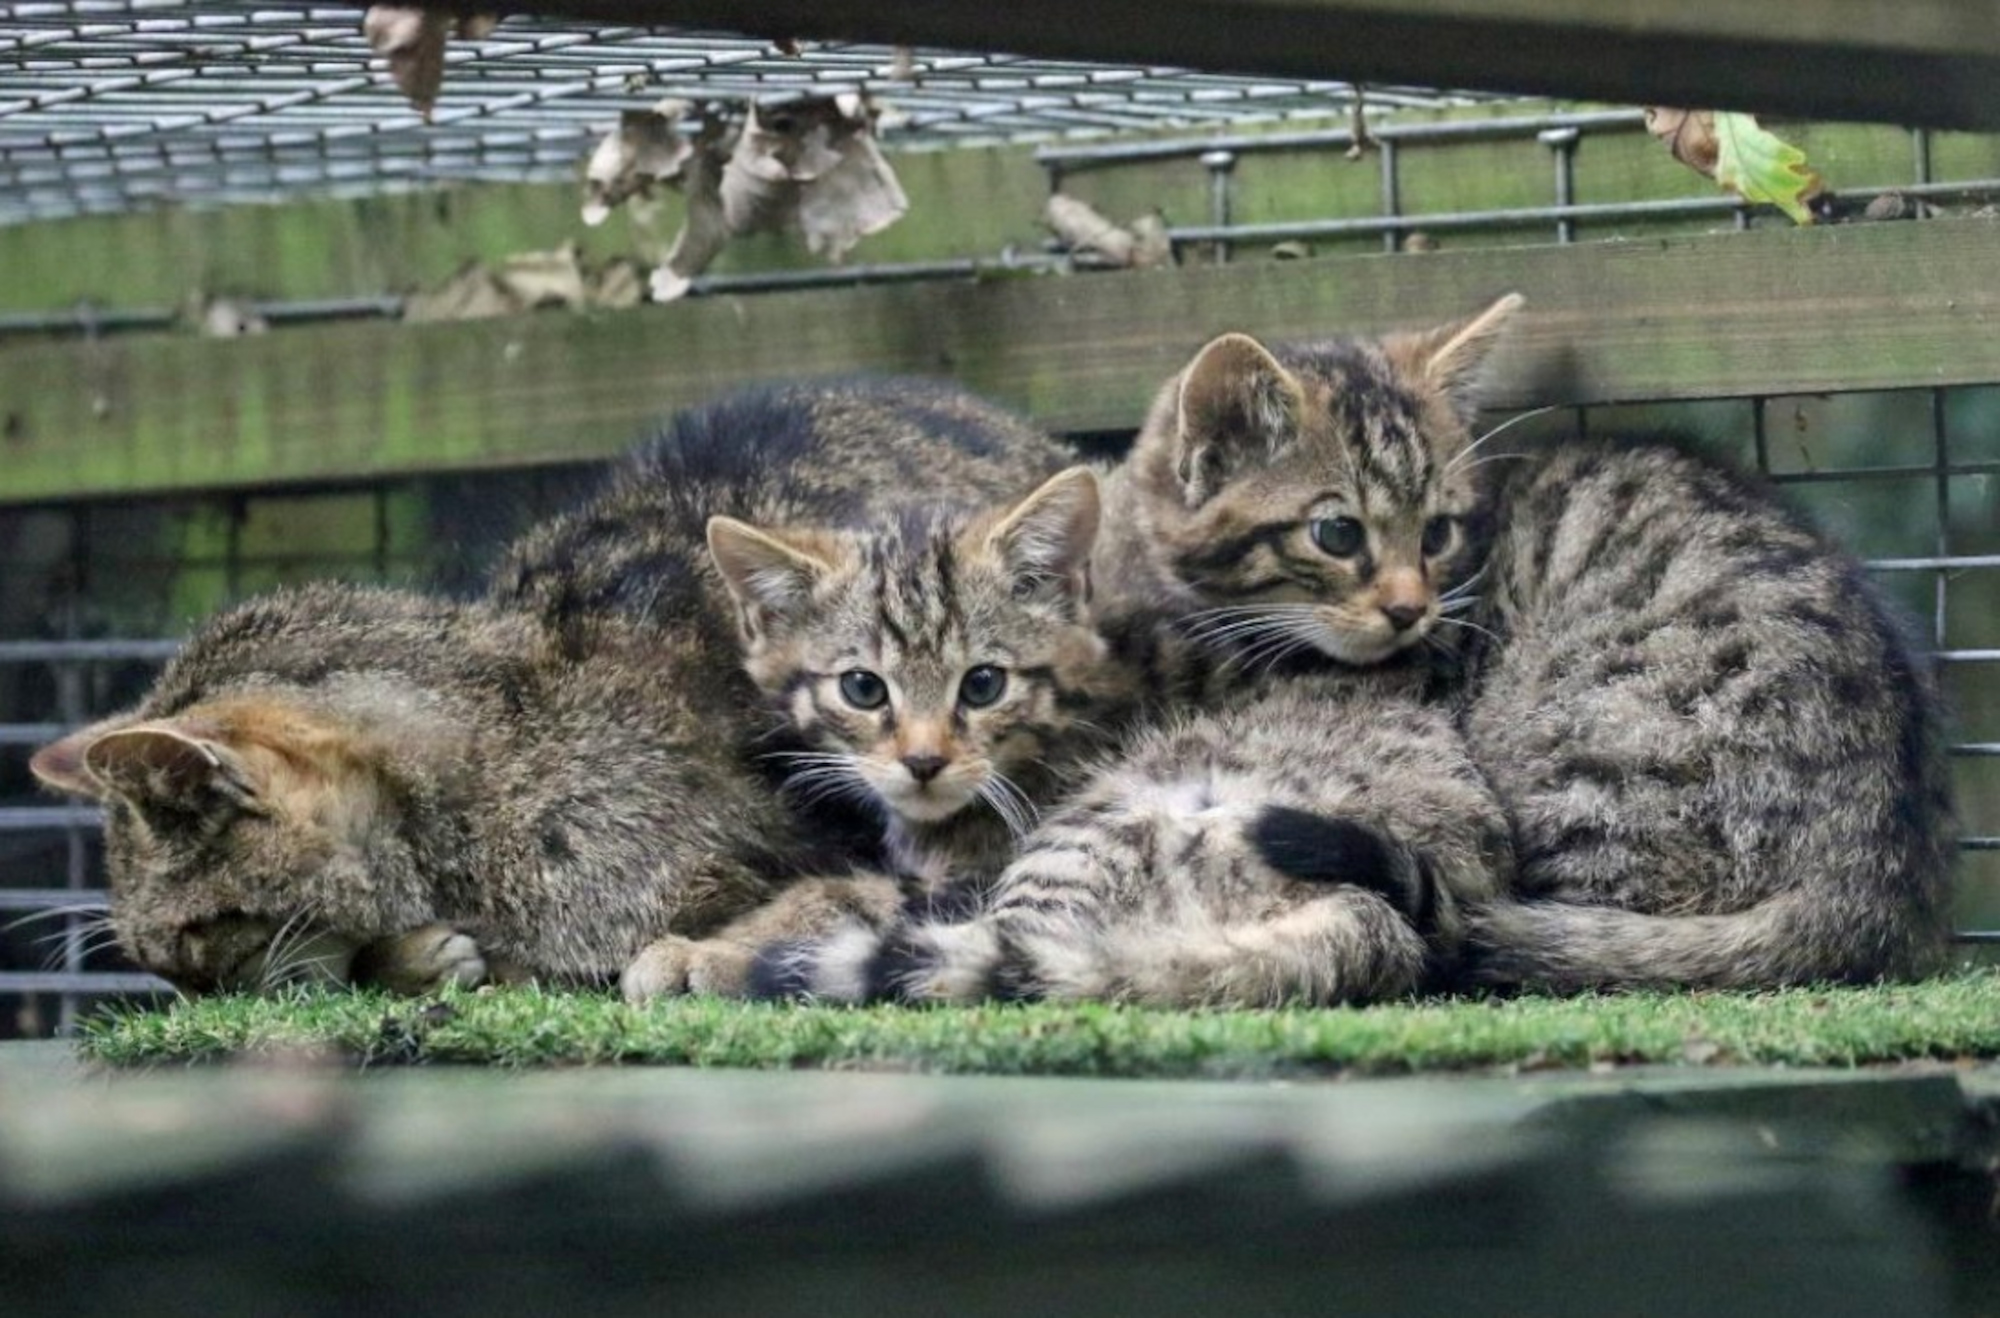 Purr-fect! First Population Of Rare Wildcats Sighted Outside Scottish Highlands In 200 Years